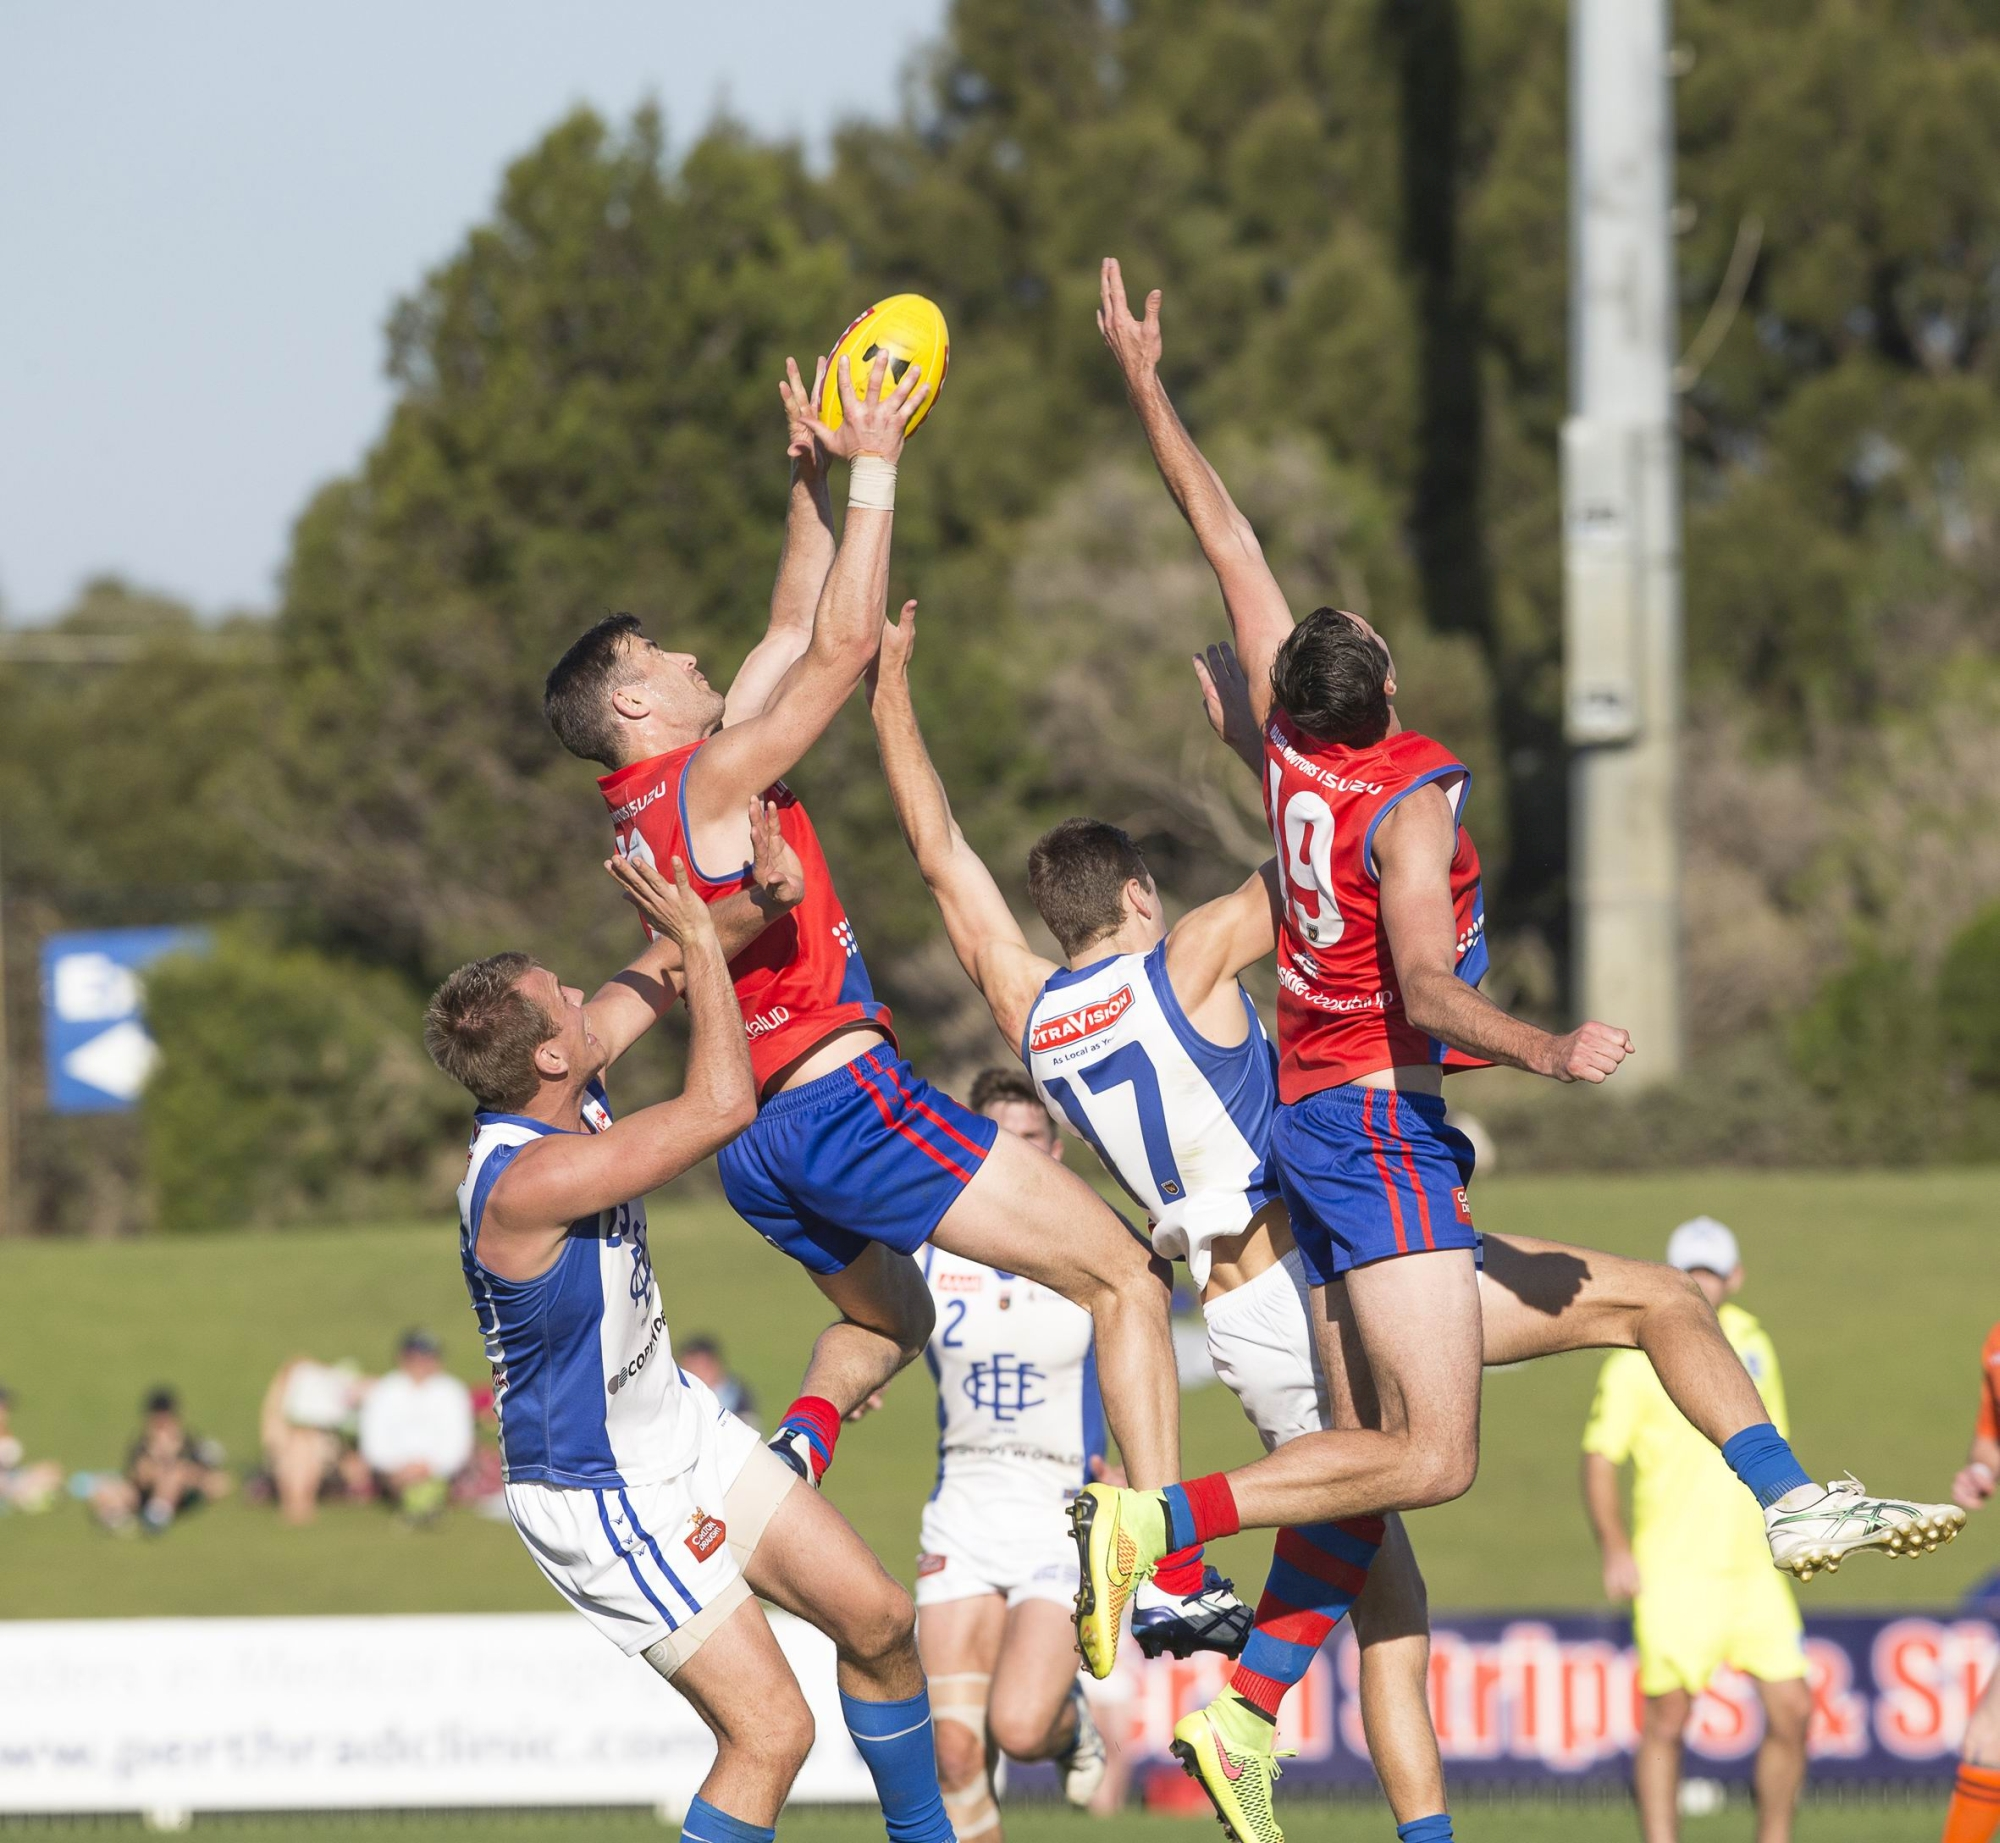 West Perth's Dan Hunt lines up for a strong contested mark. Picture: Dan White